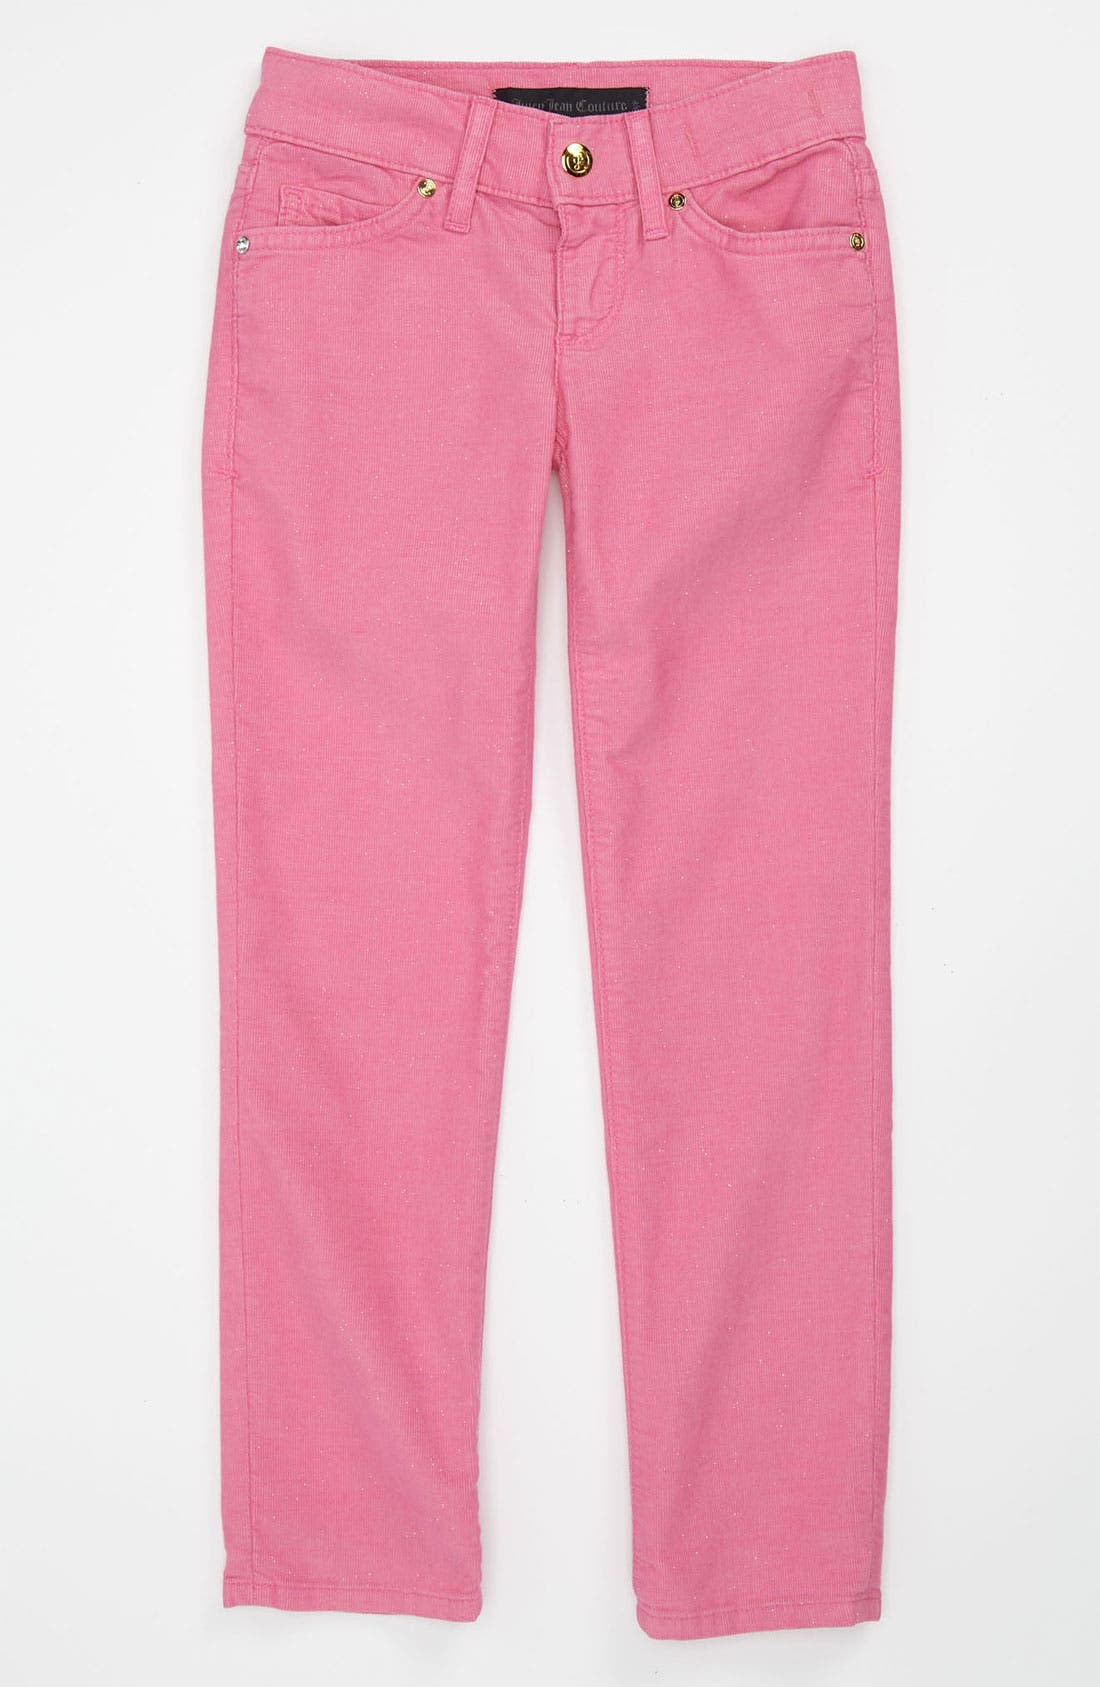 Main Image - Juicy Couture Glitter Corduroy Pants (Little Girls & Big Girls)